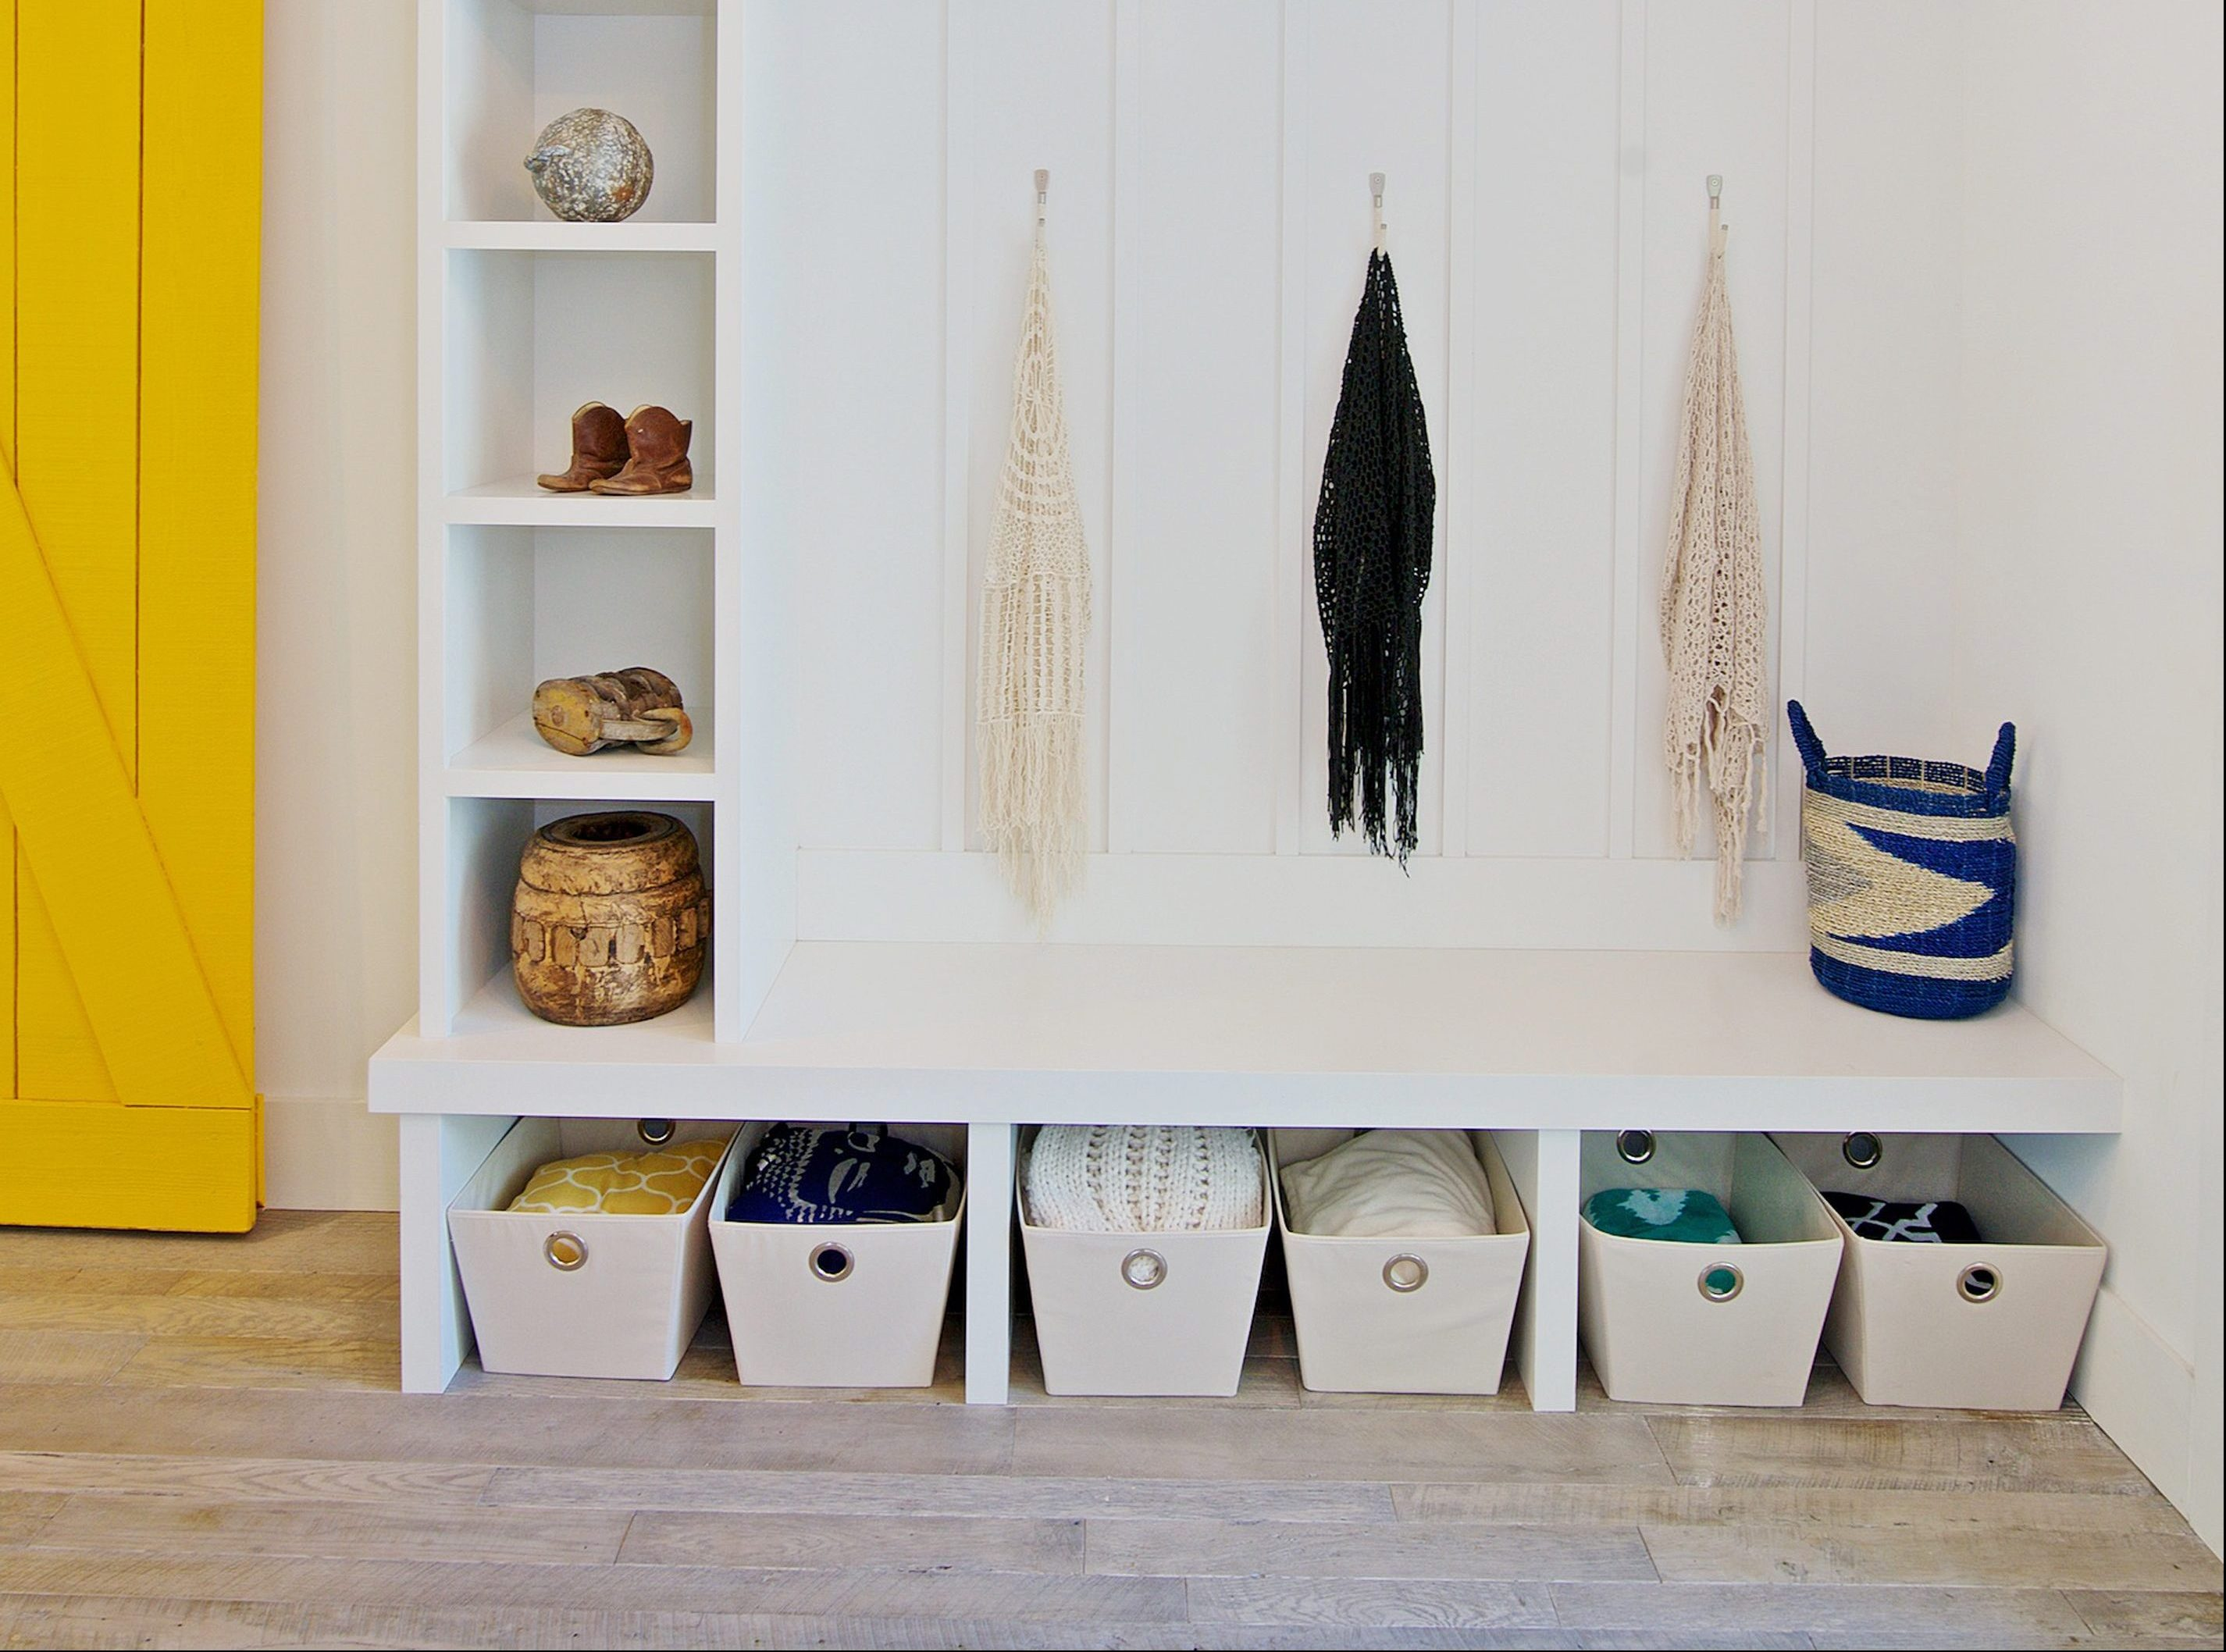 small spaces, organization, how to make small spaces feel bigger